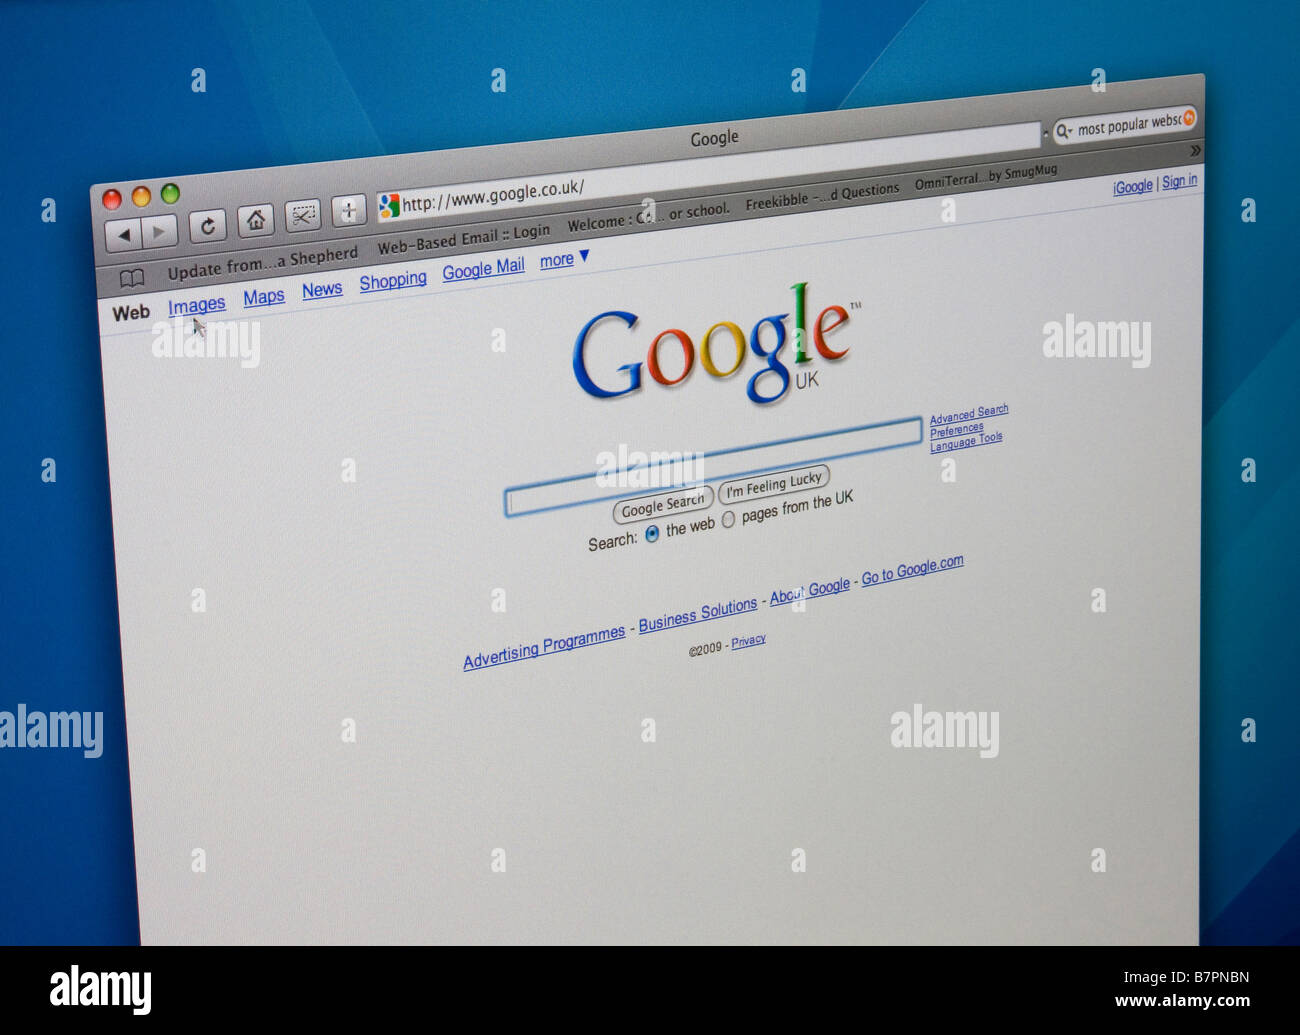 Google search page homepage. - Stock Image